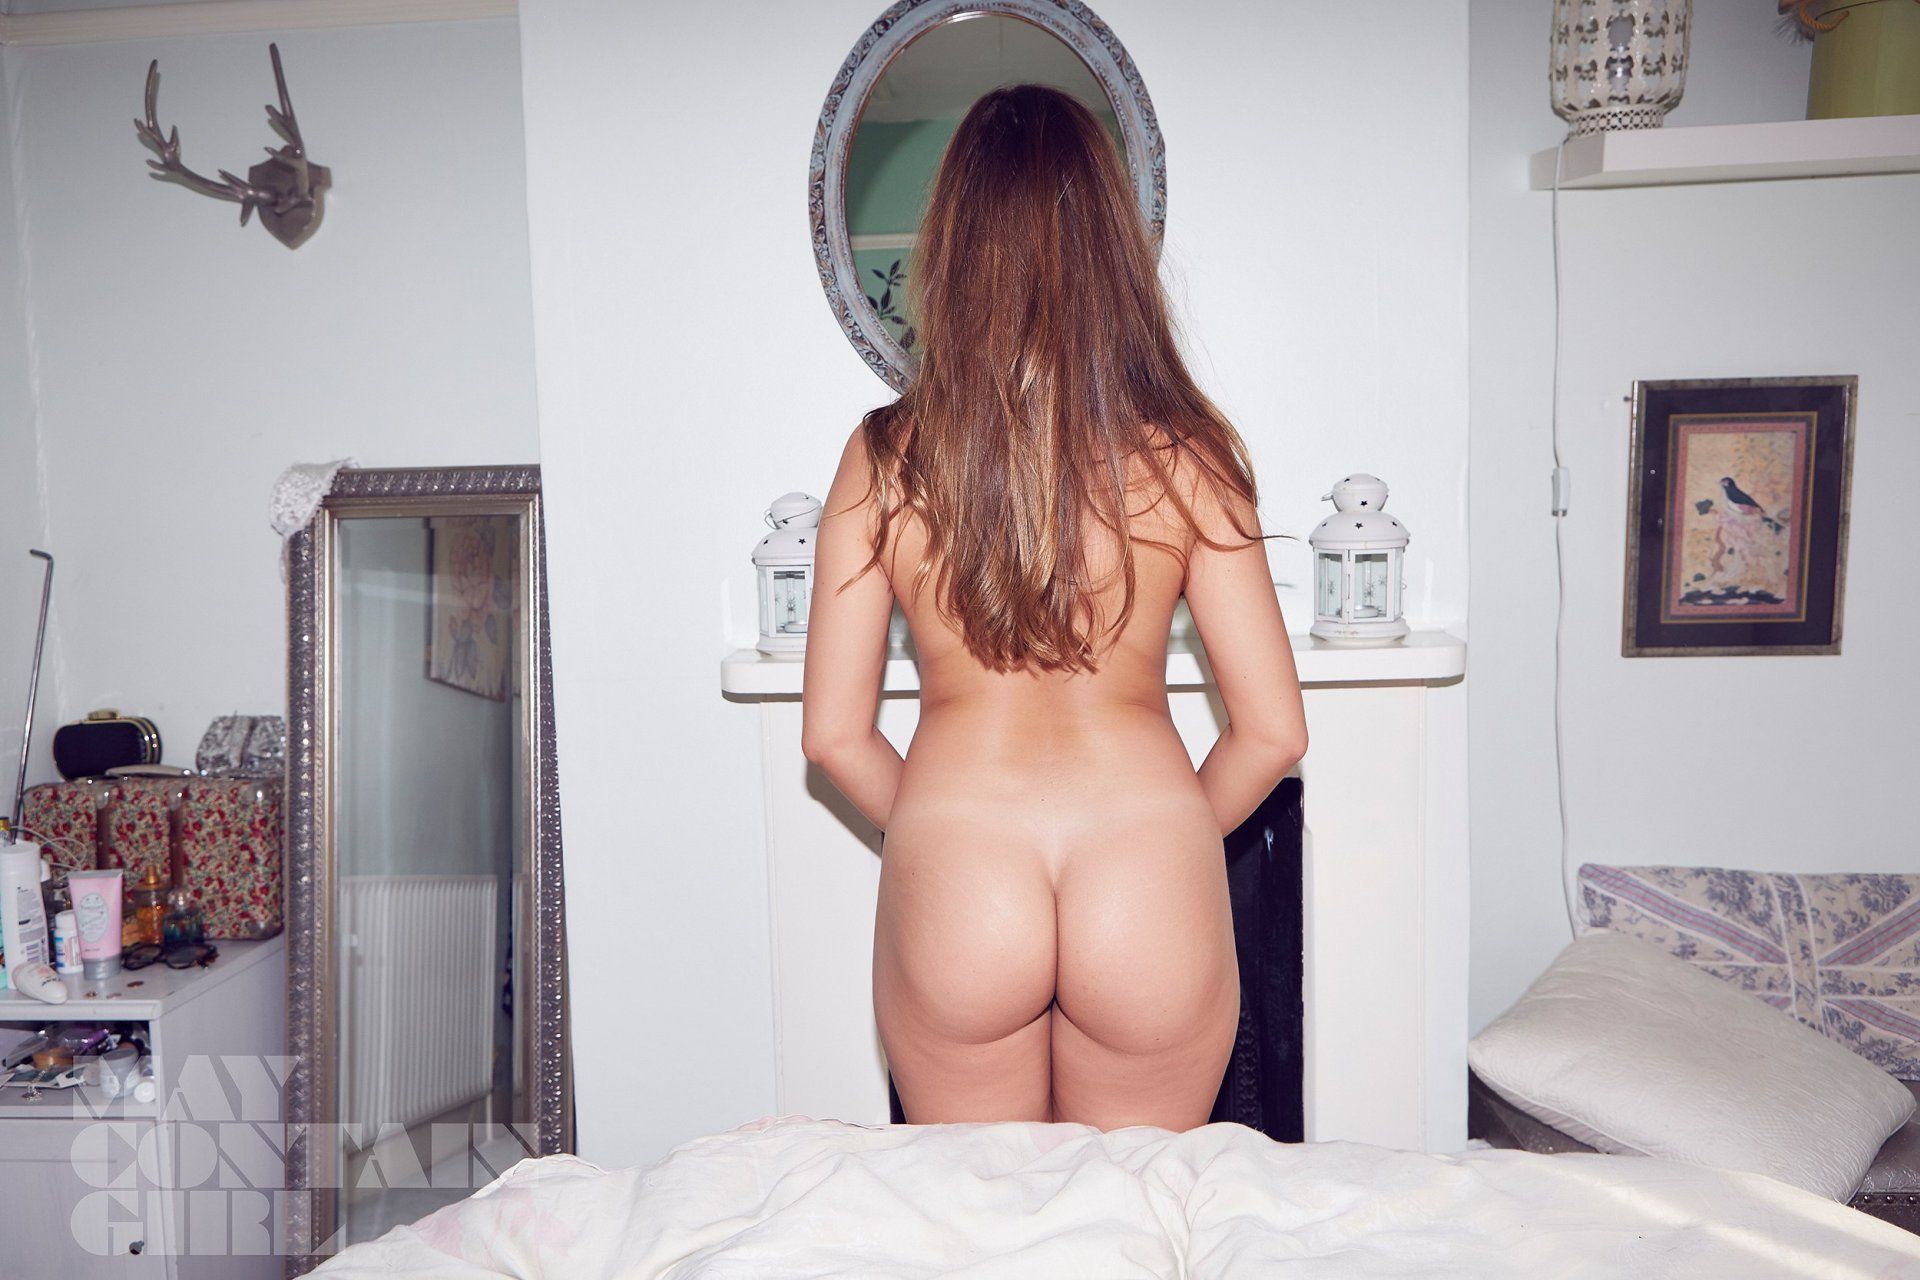 Adore joey fisher naked has